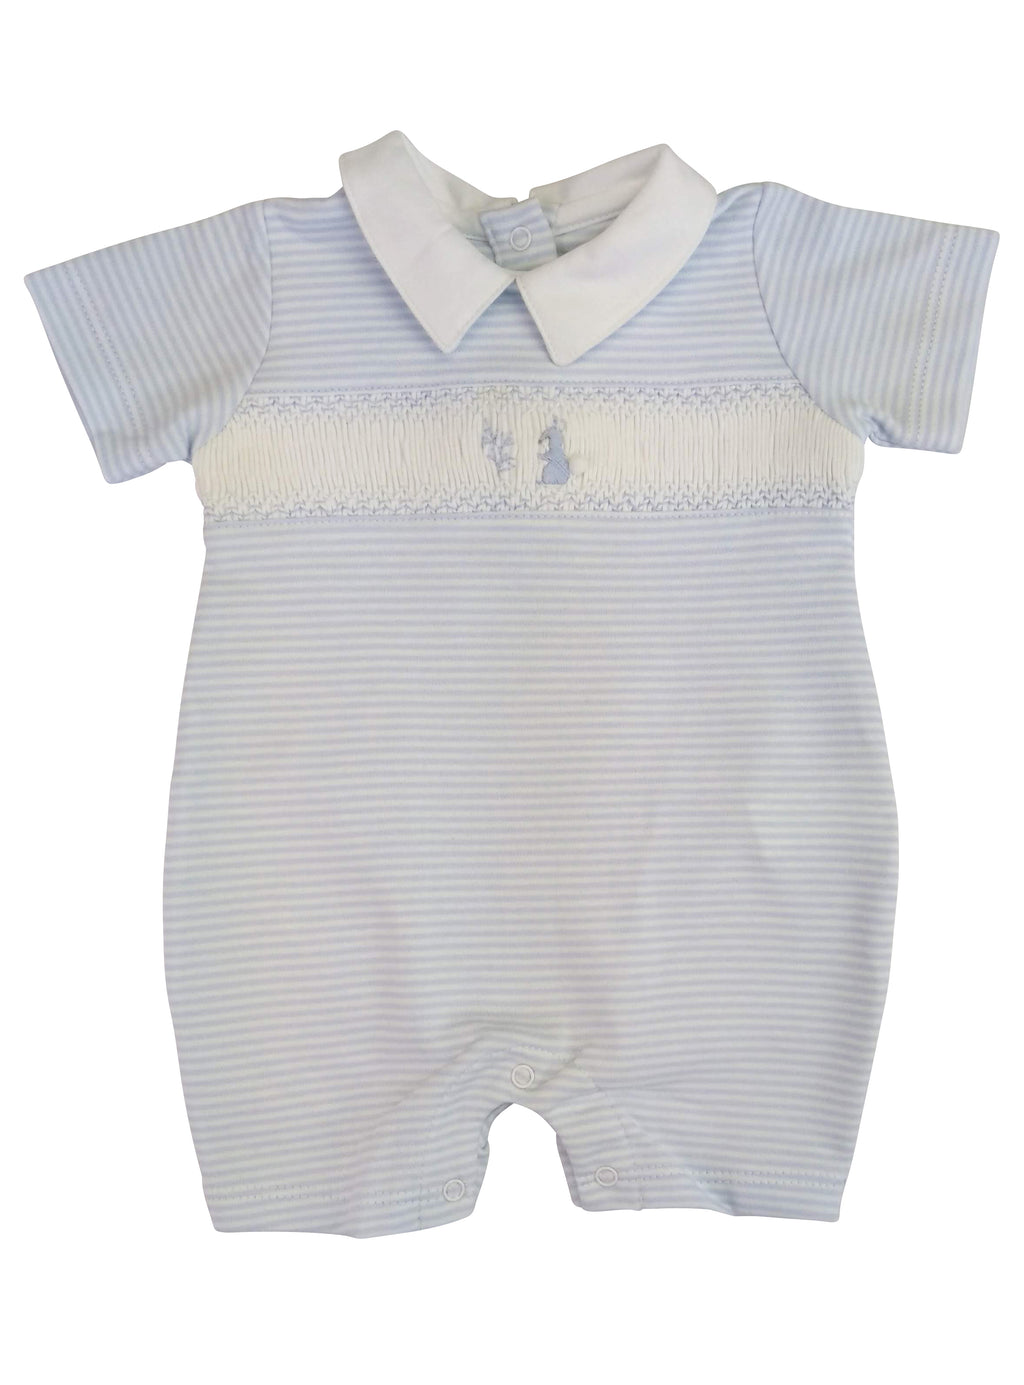 Baby Boy's Blue Smocked Bunny Romper - Little Threads Inc. Children's Clothing